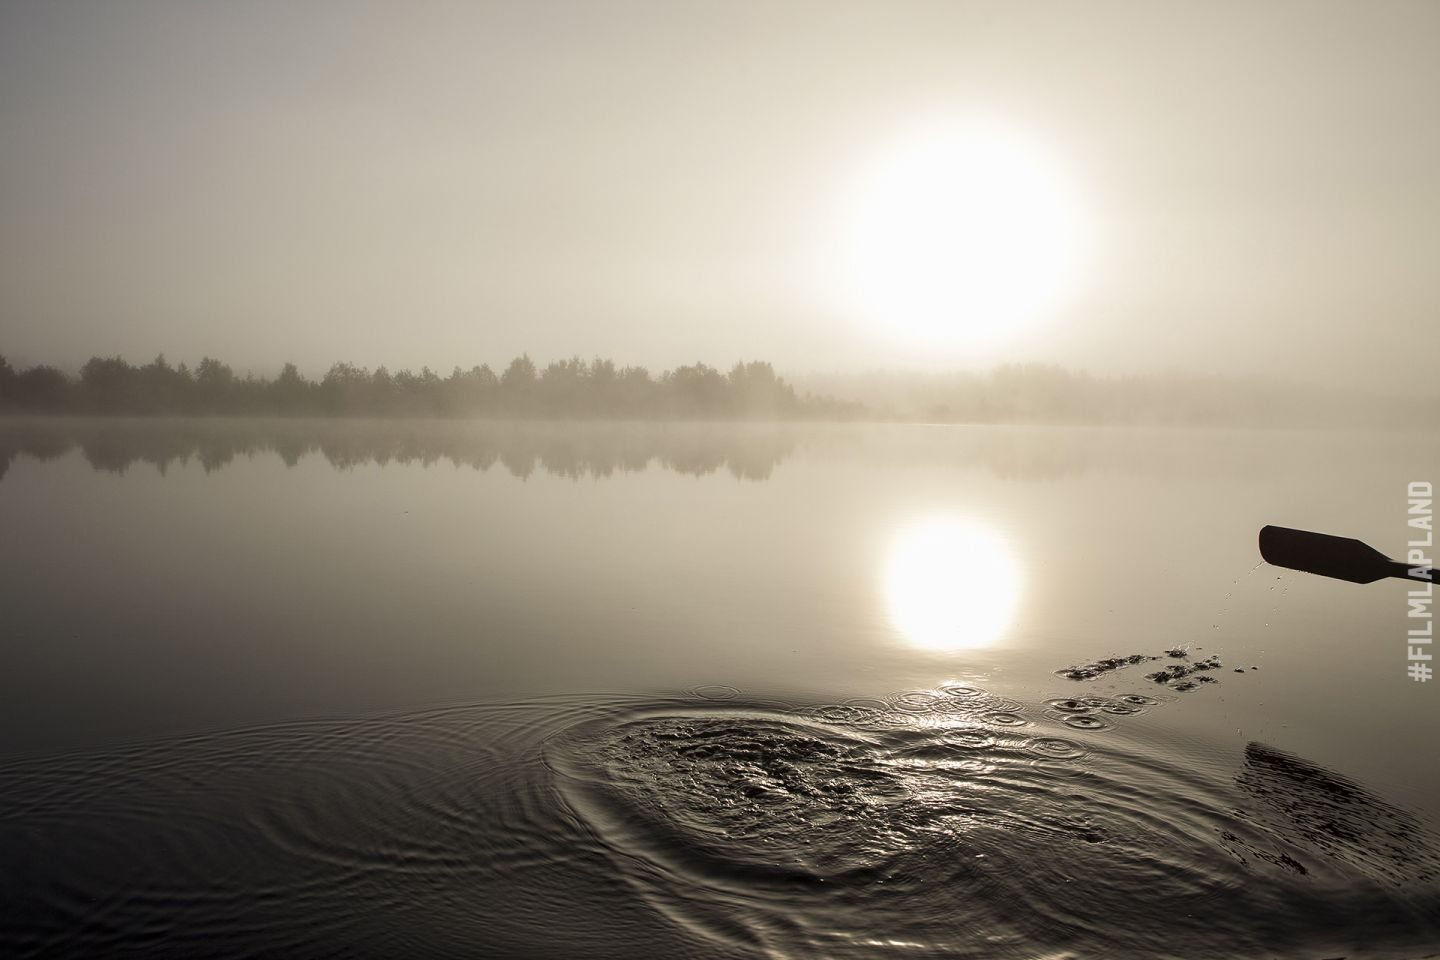 Midnight Sun over a misty lake in Sodankylä, Finland